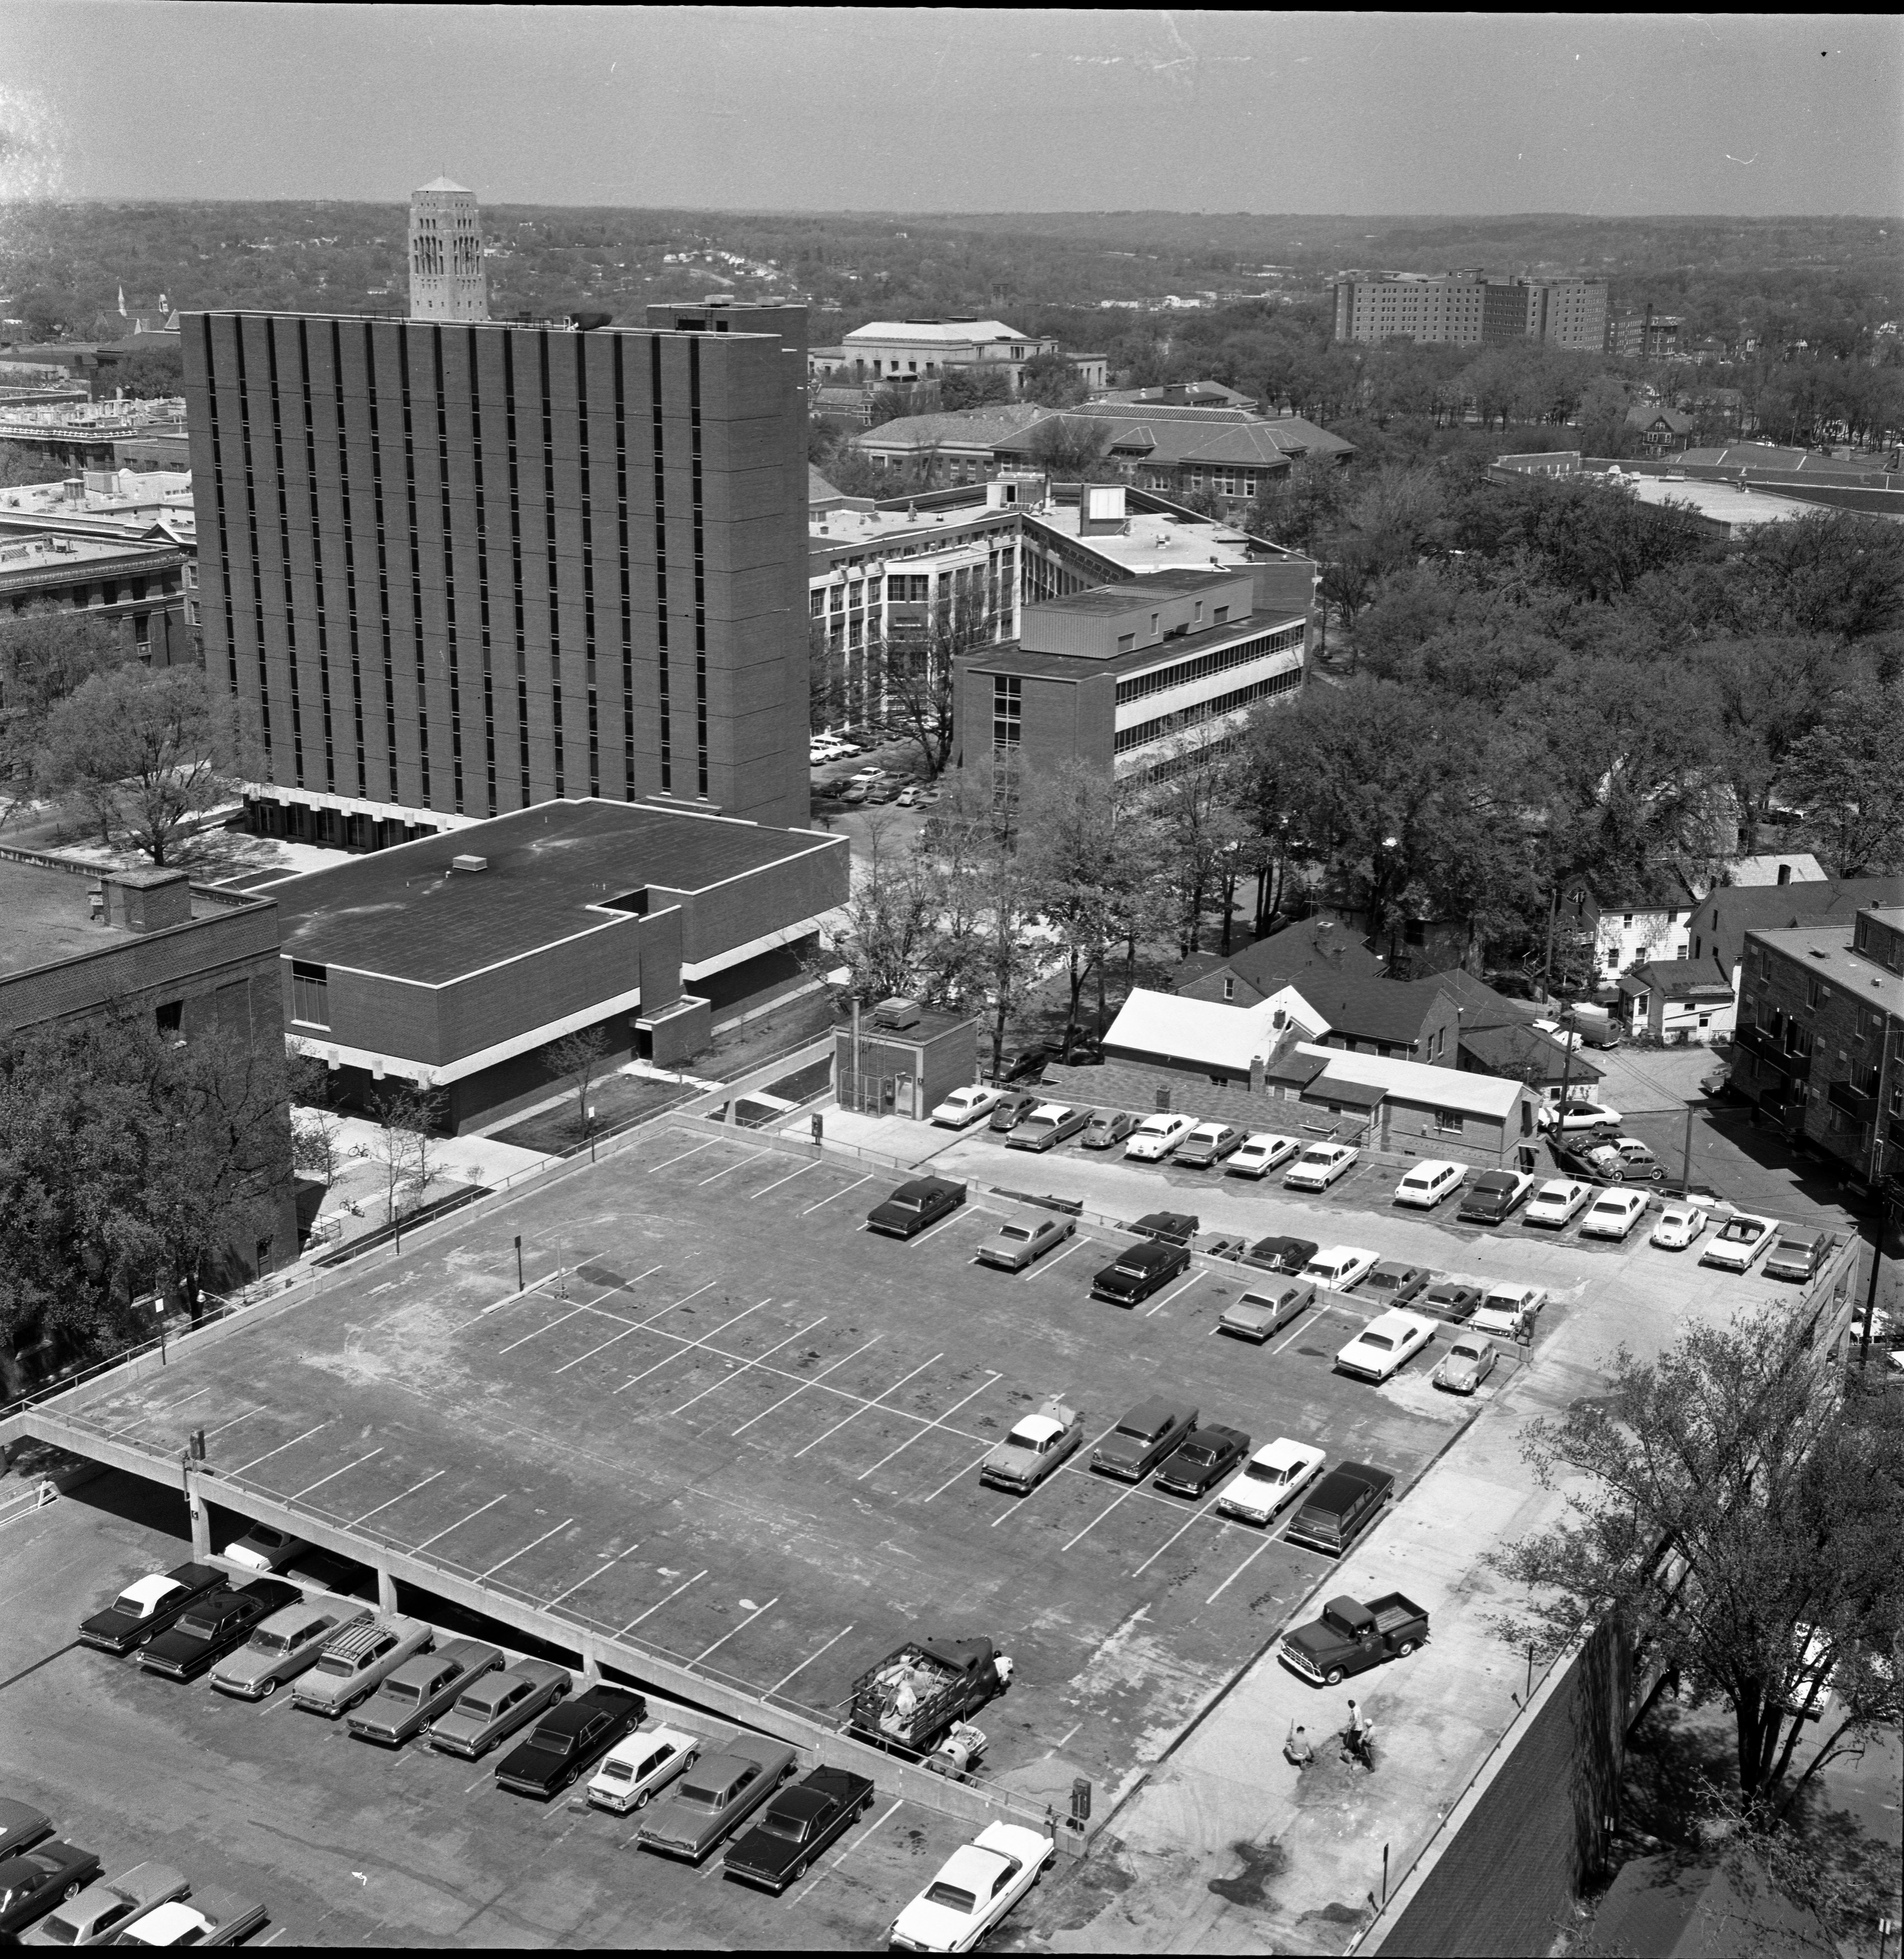 Aerial View From 13th Floor Of University Towers Construction Looking North-West Toward Rackham & St. Joseph Mercy Hospital, May 27, 1965 image